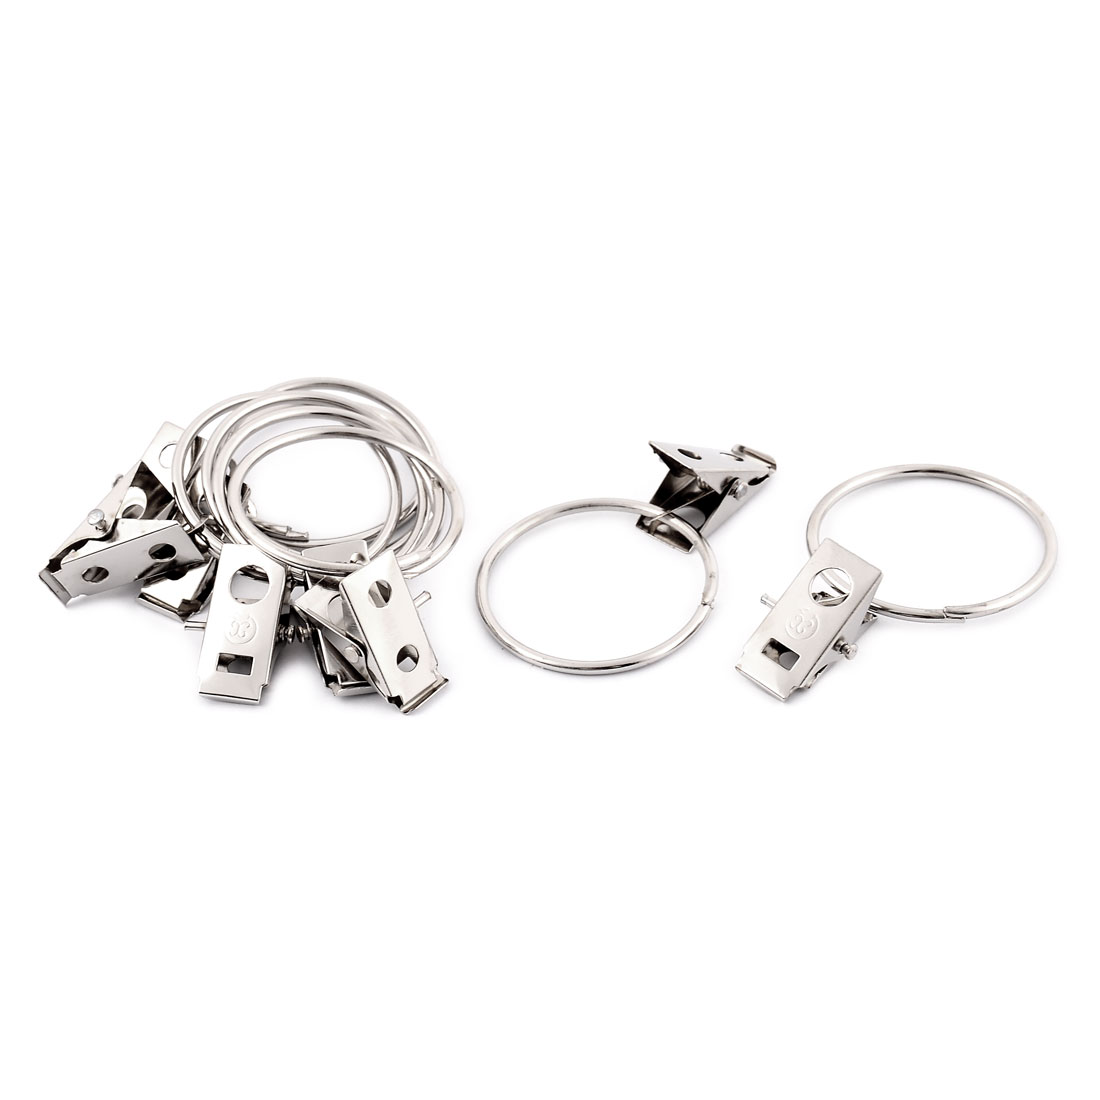 8 Pcs Metal Hooks Sprung Curtain Clothes Clips Clamps 36mm Dia Ring